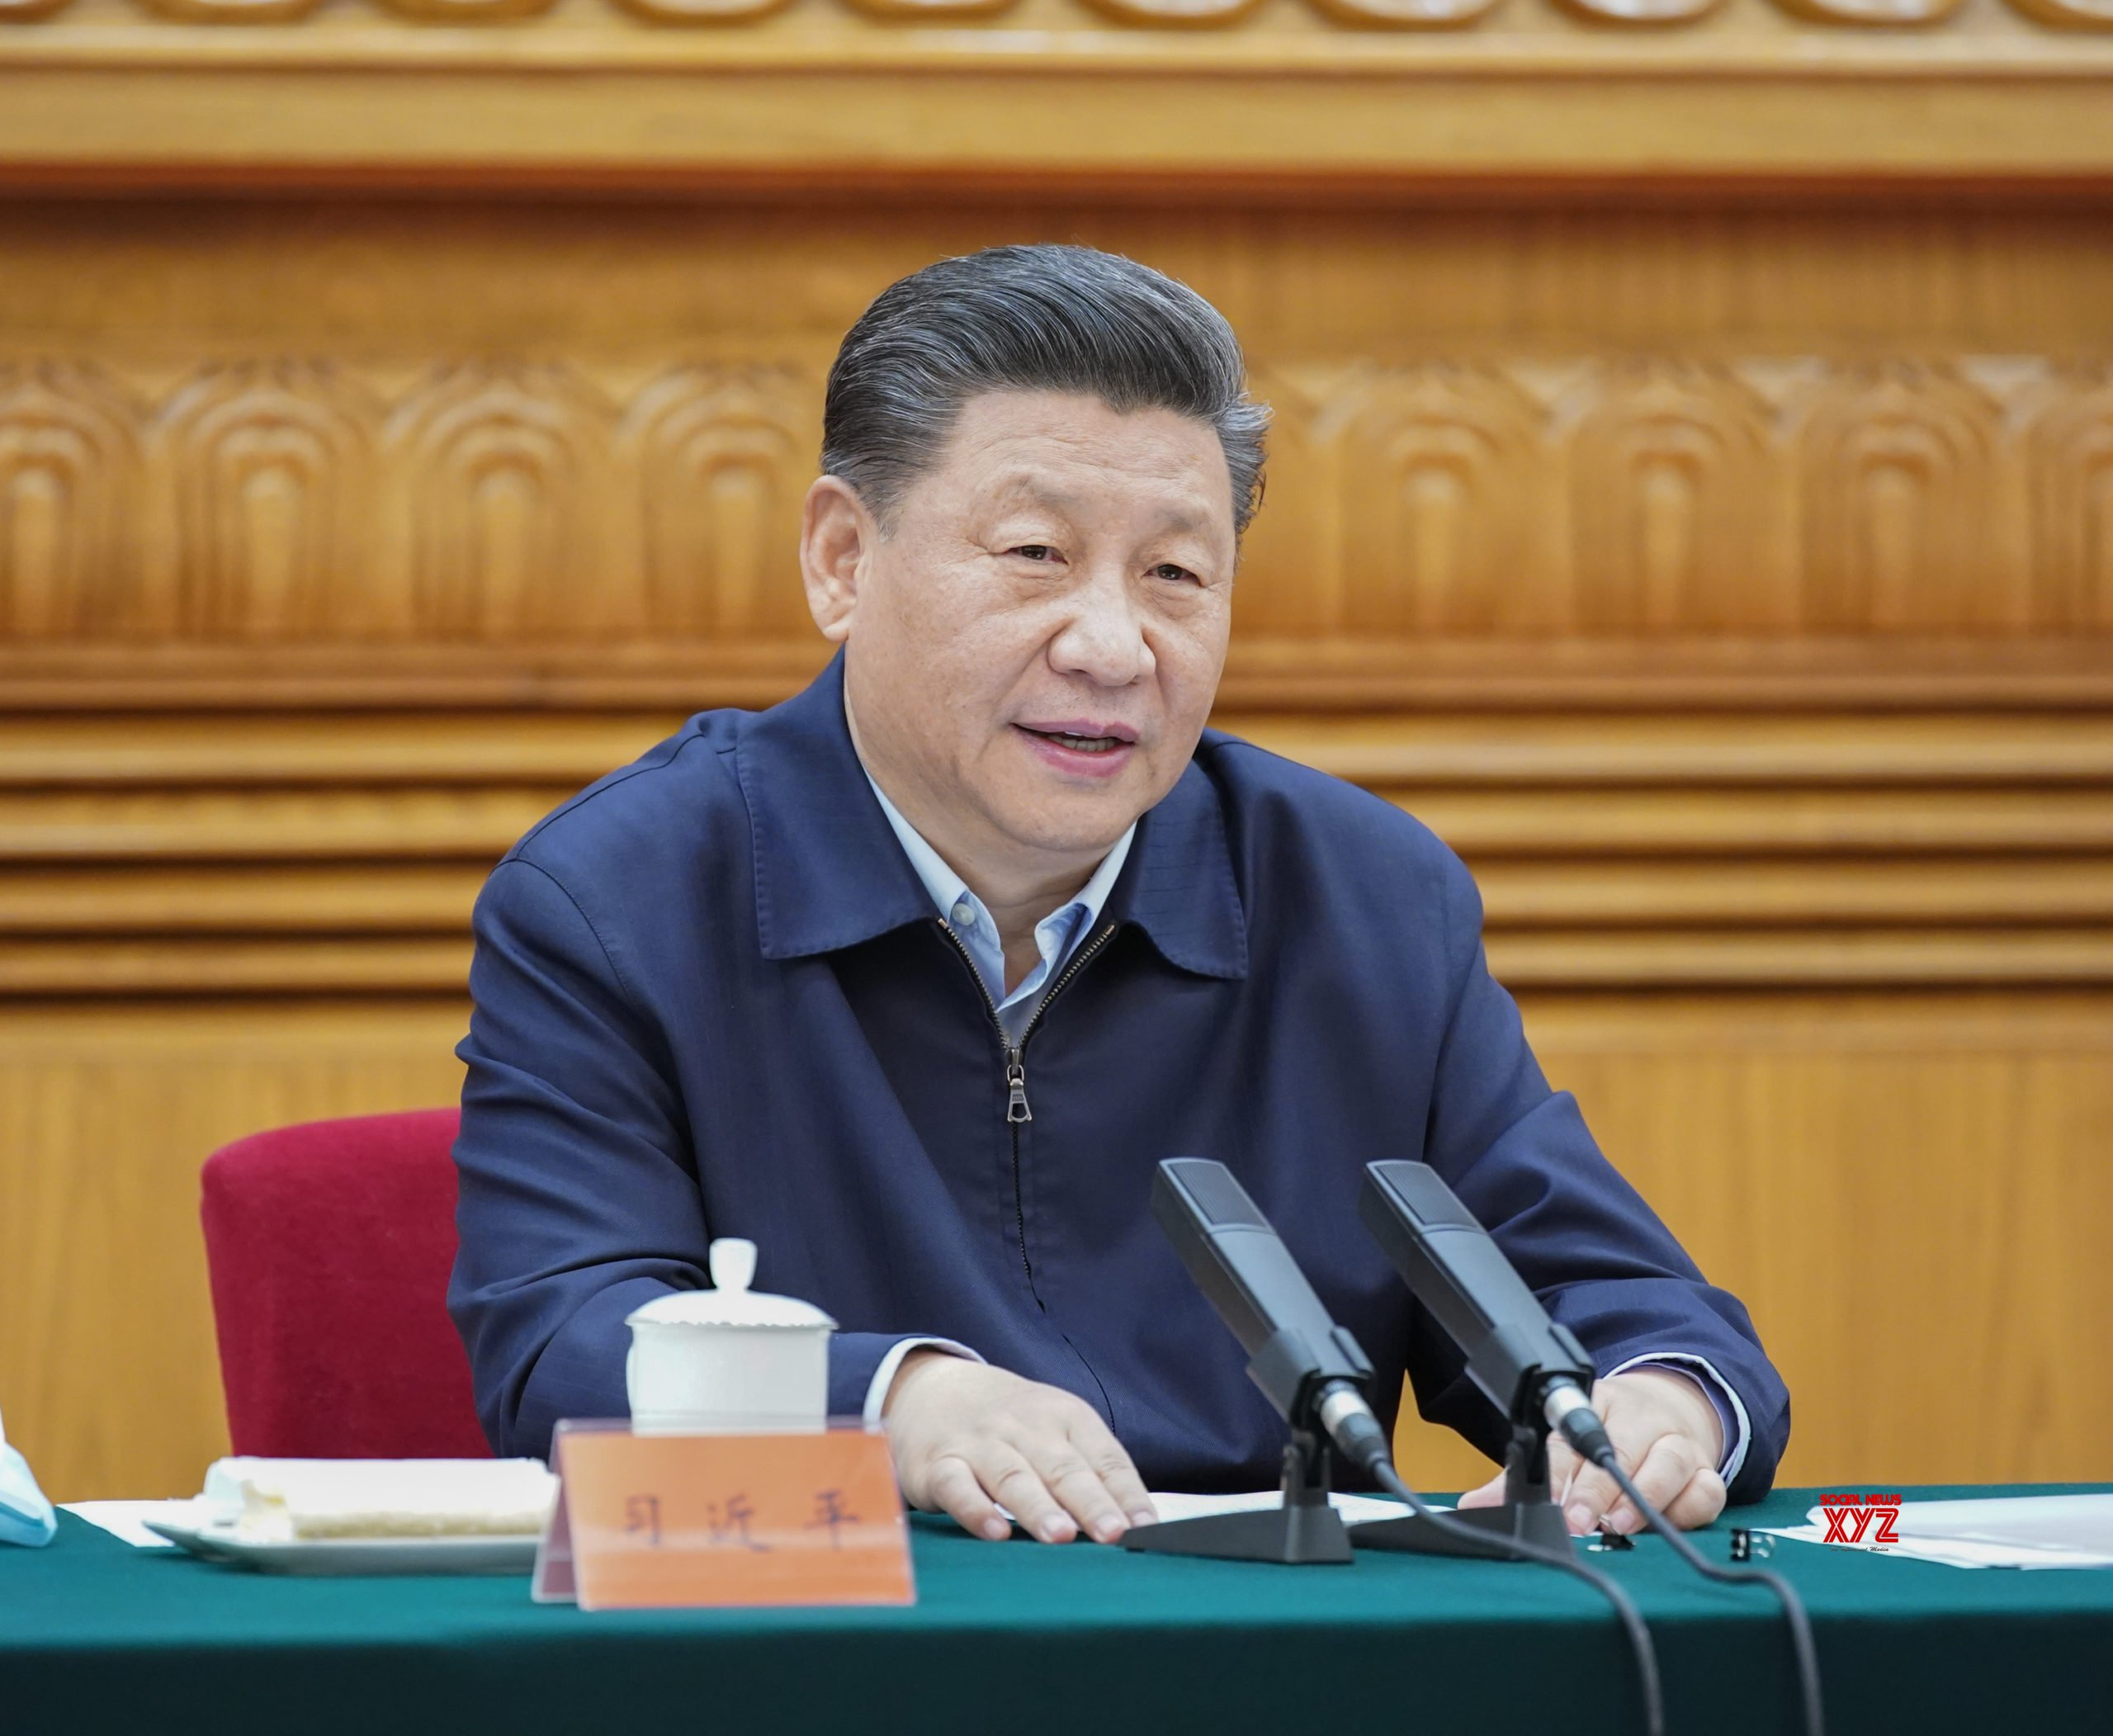 CHINA - BEIJING - XI JINPING - SYMPOSIUM - EXPERTS AND SCHOLARS #Gallery